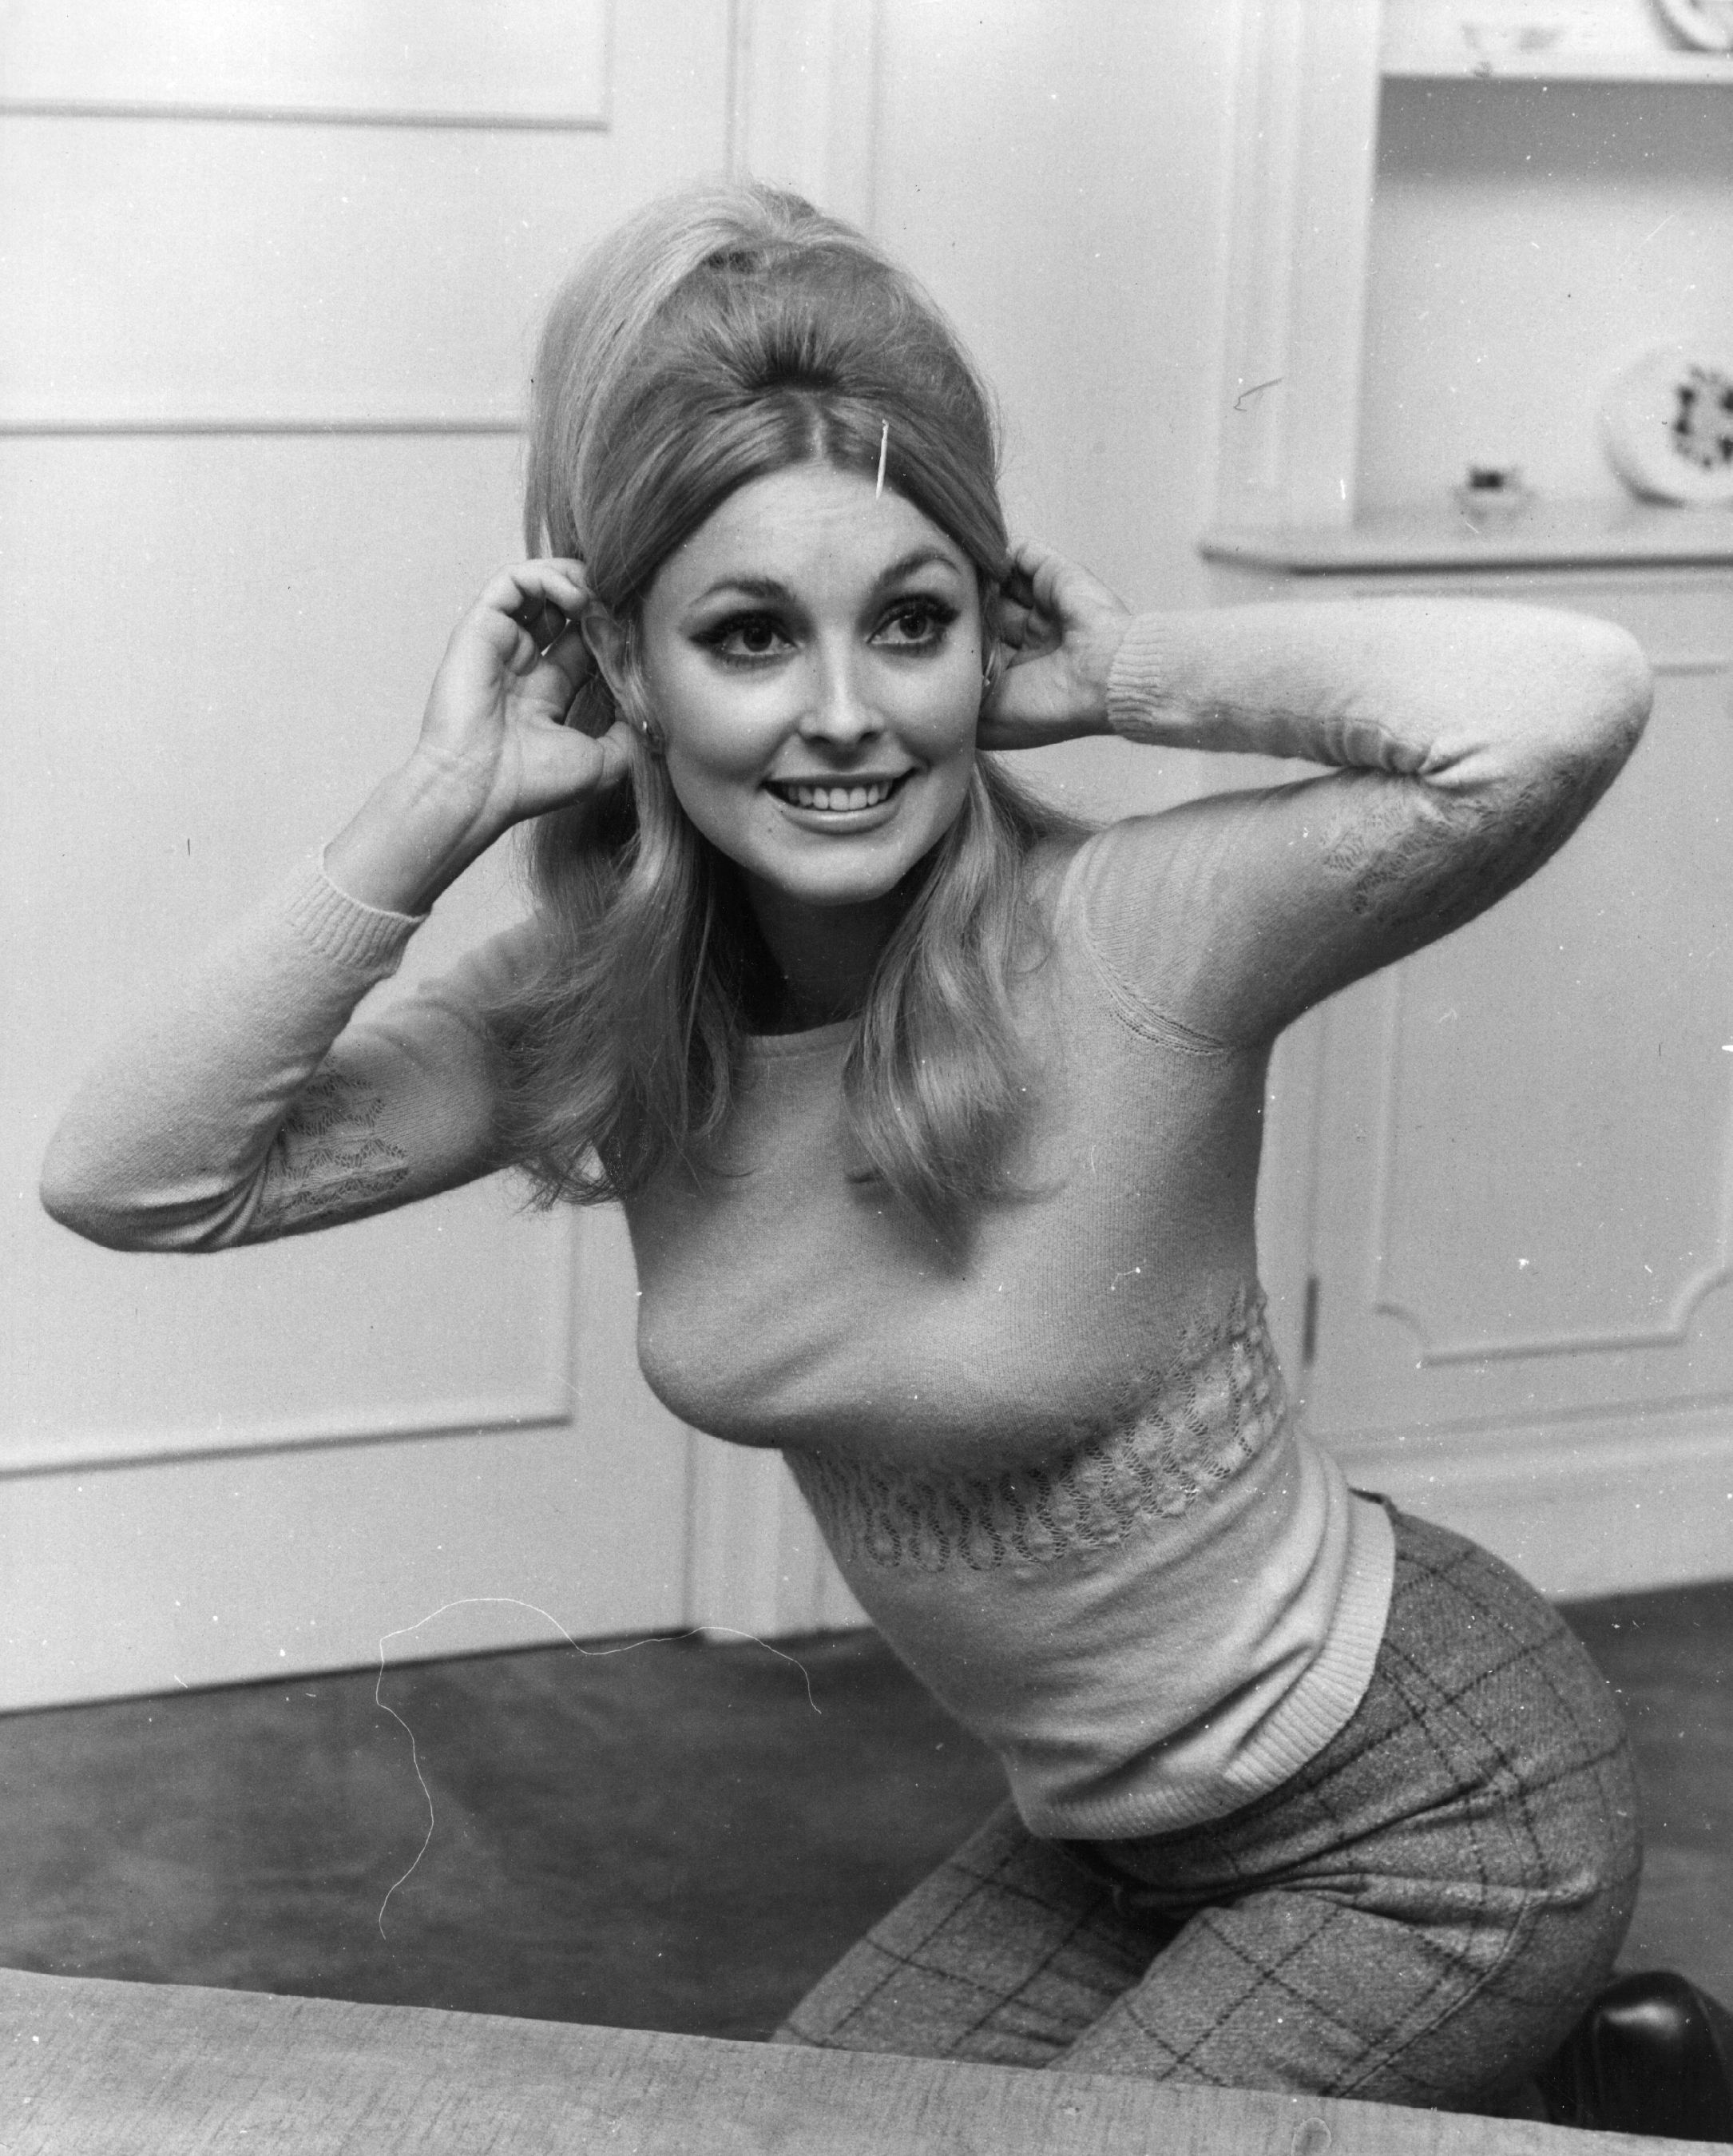 Image Source: Getty Images| Sharon Tate posing for the camera